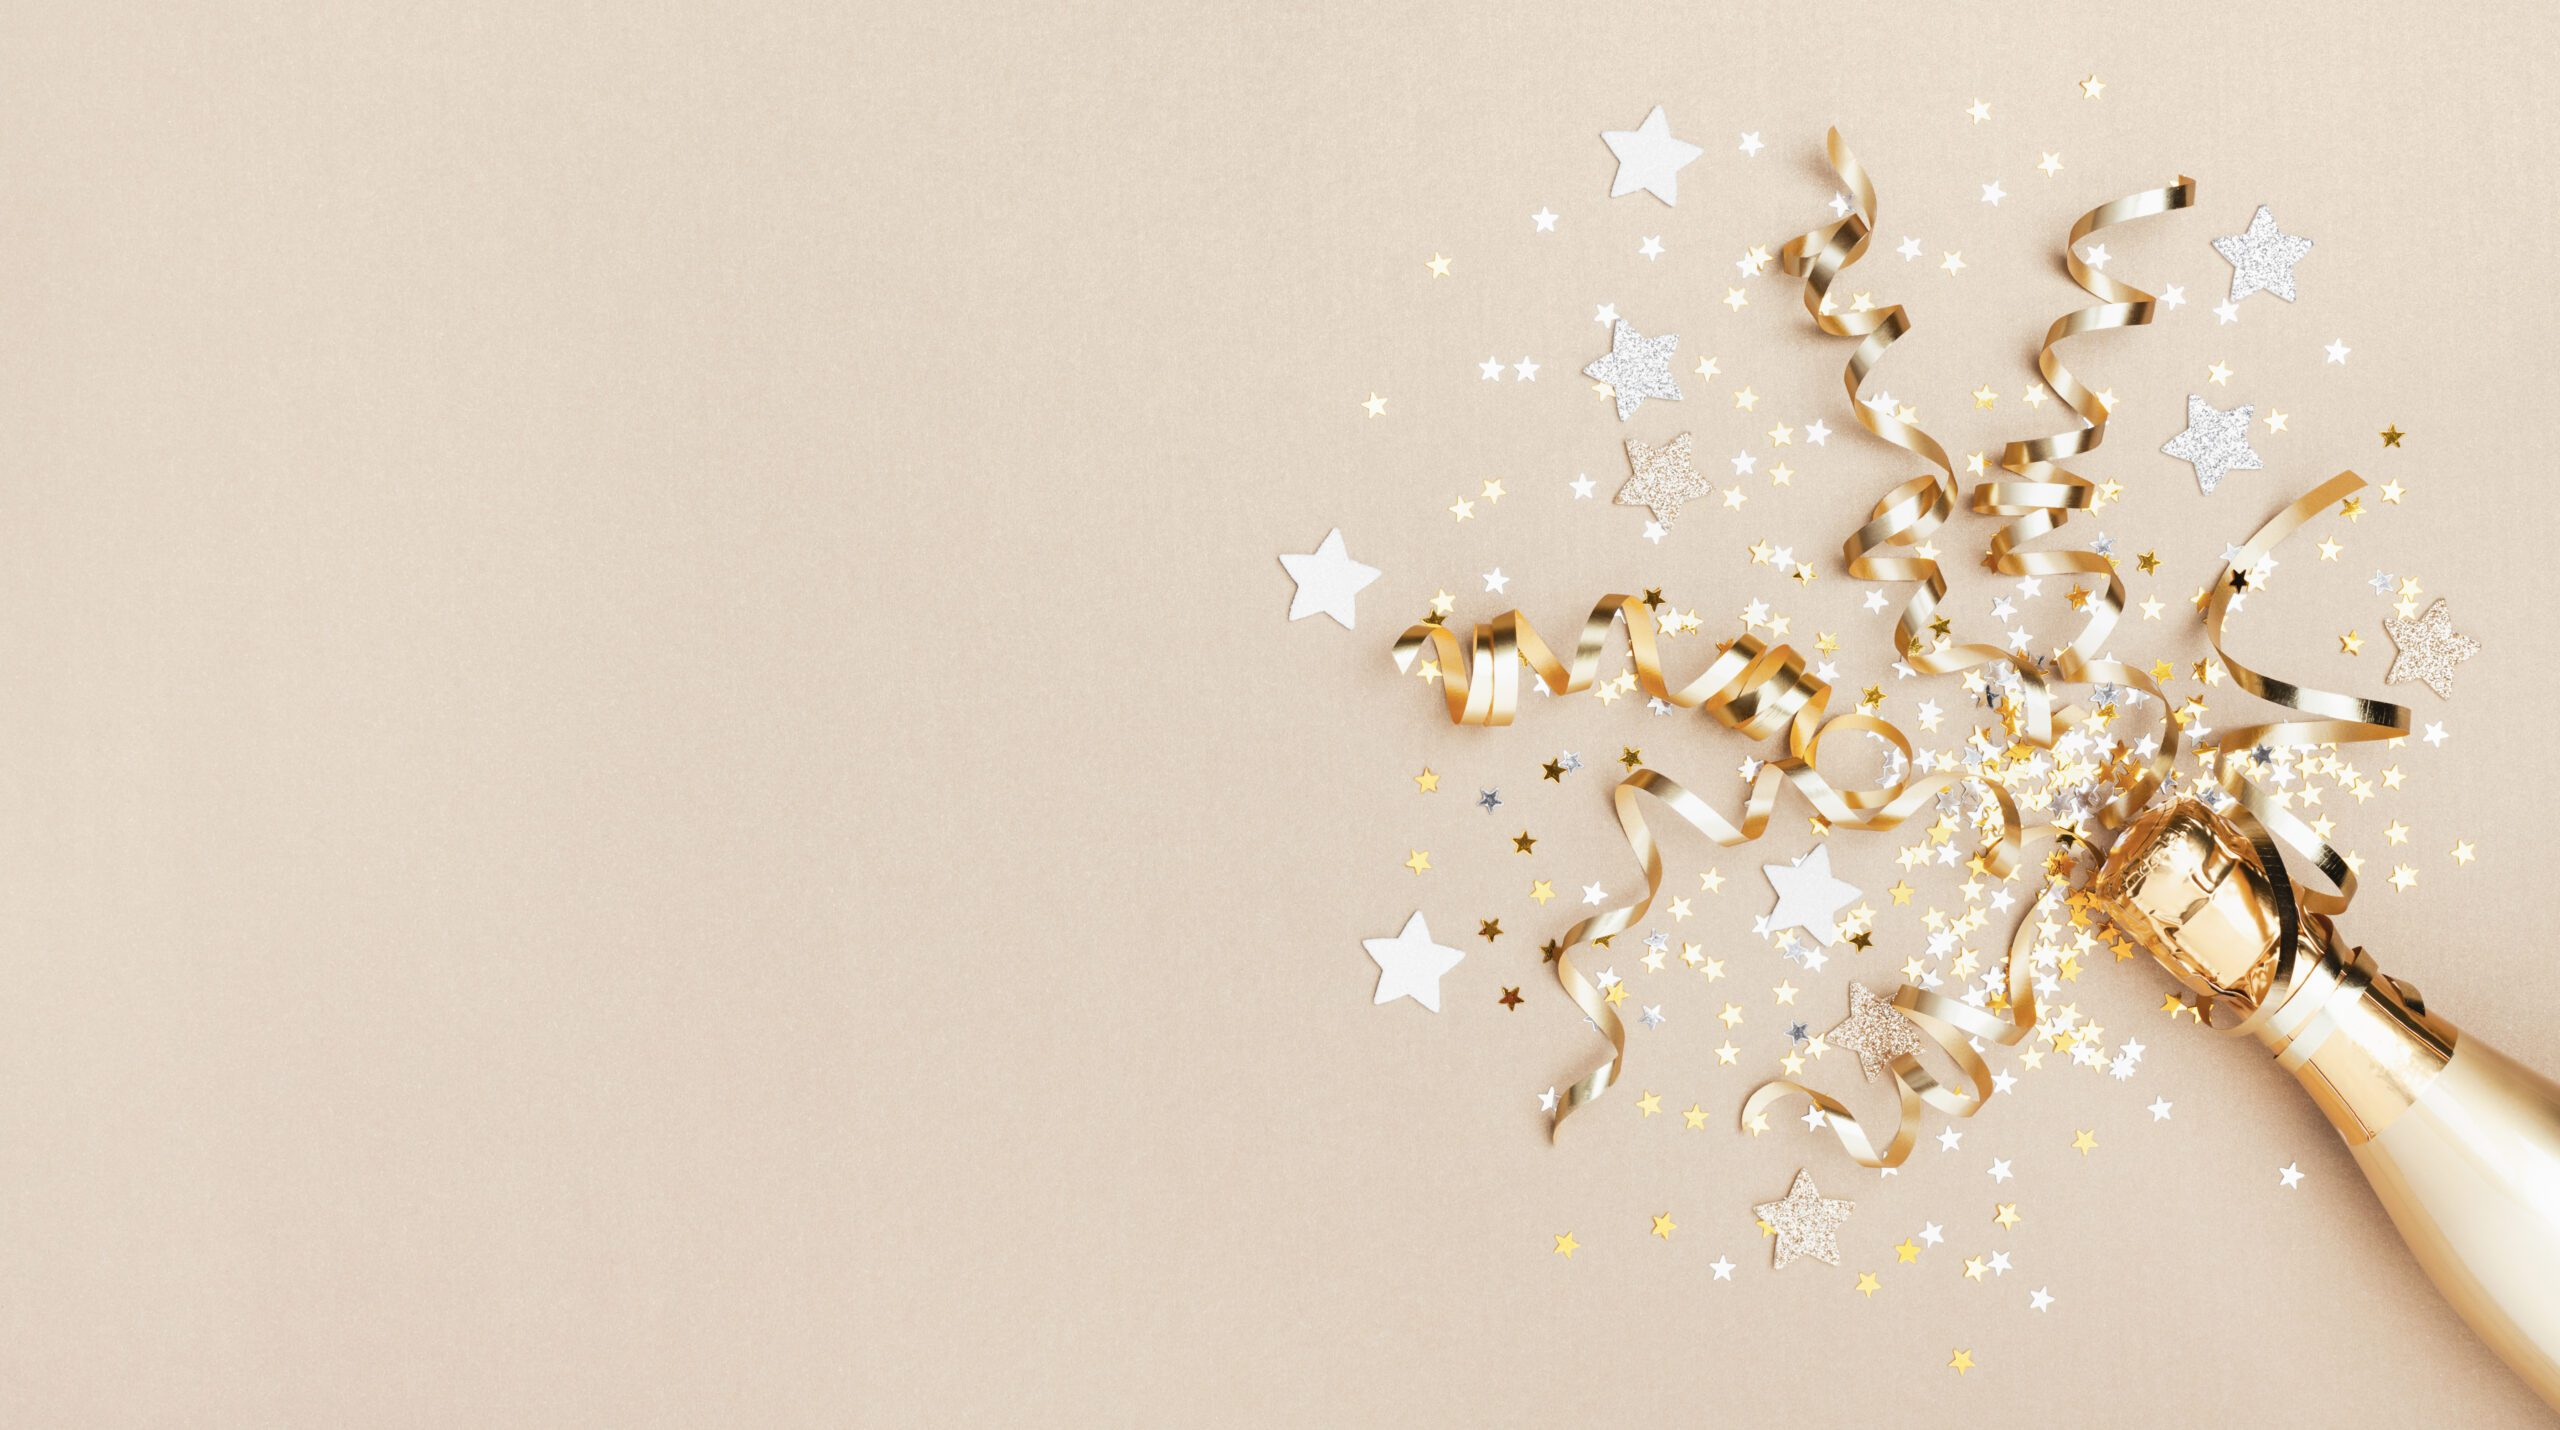 Celebration background with golden champagne bottle, confetti stars and party streamers.